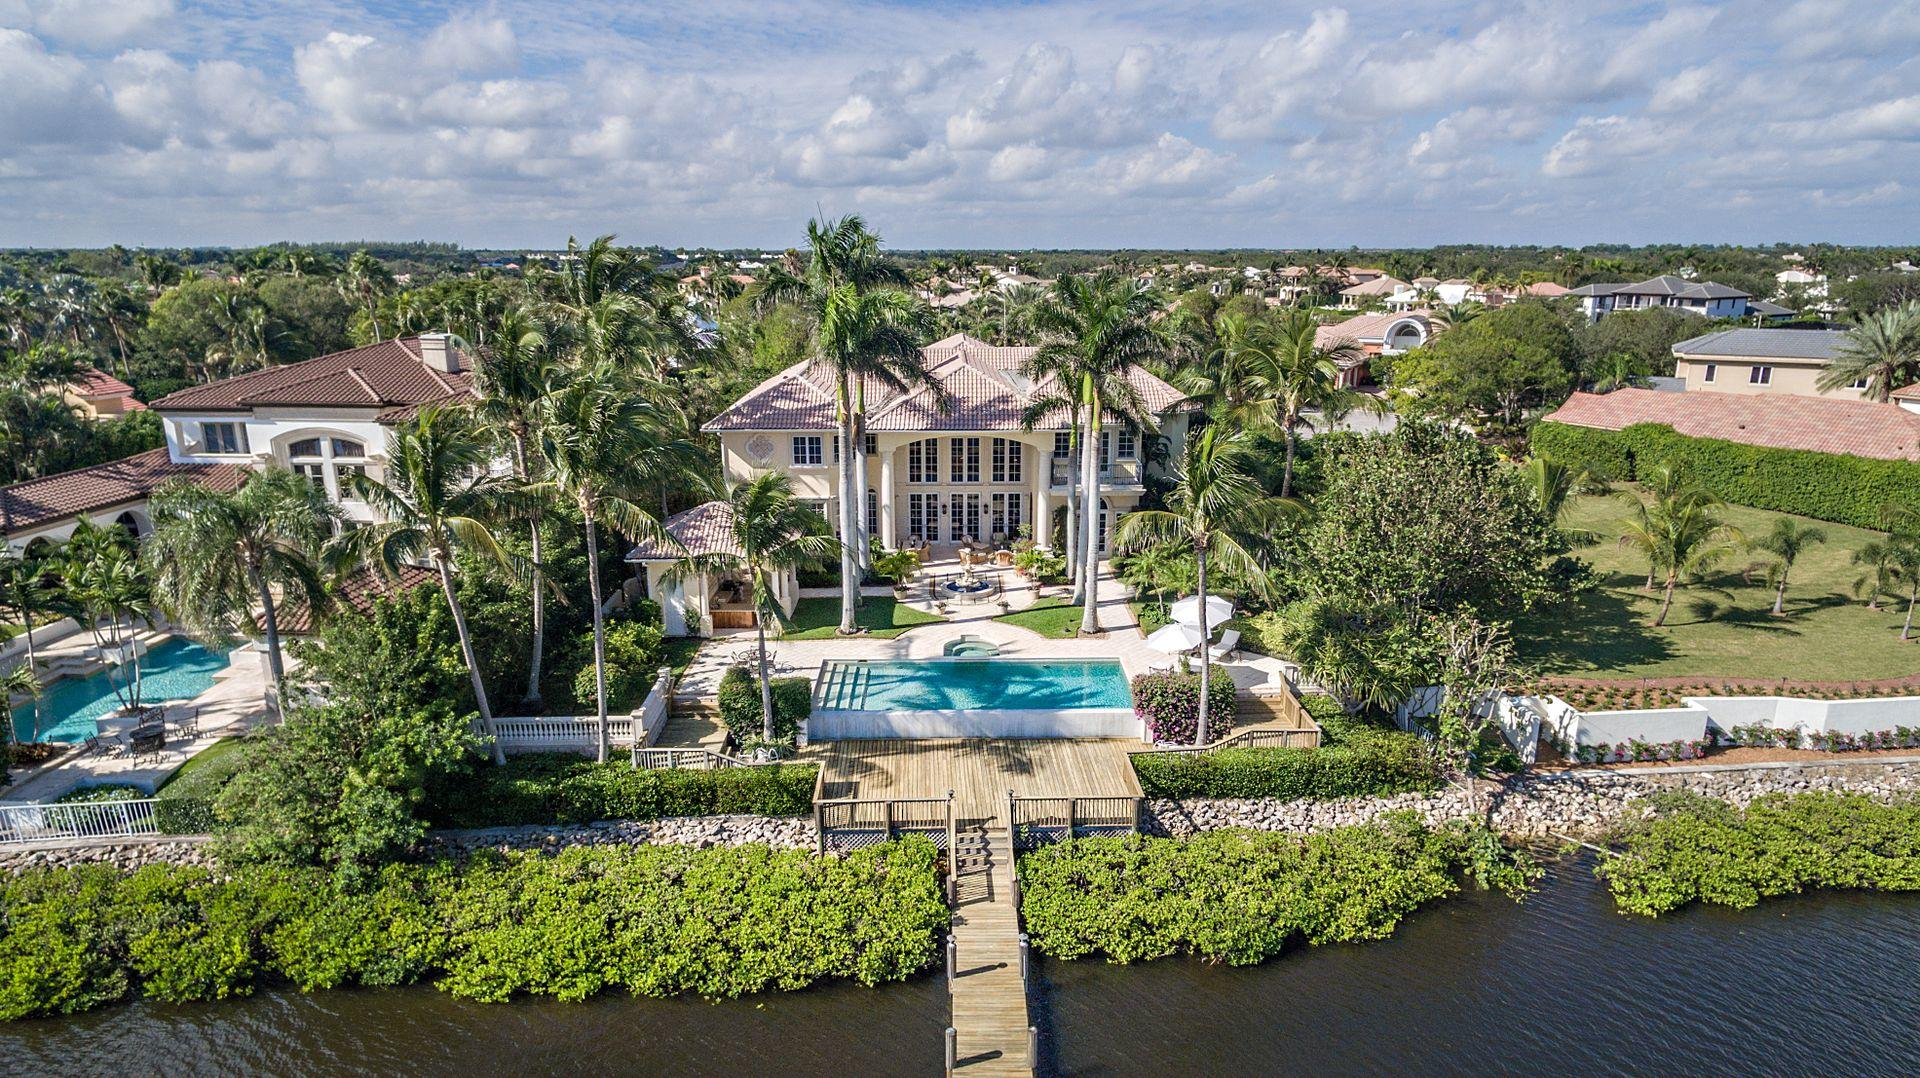 New Home for sale at 389 Eagle Drive in Jupiter